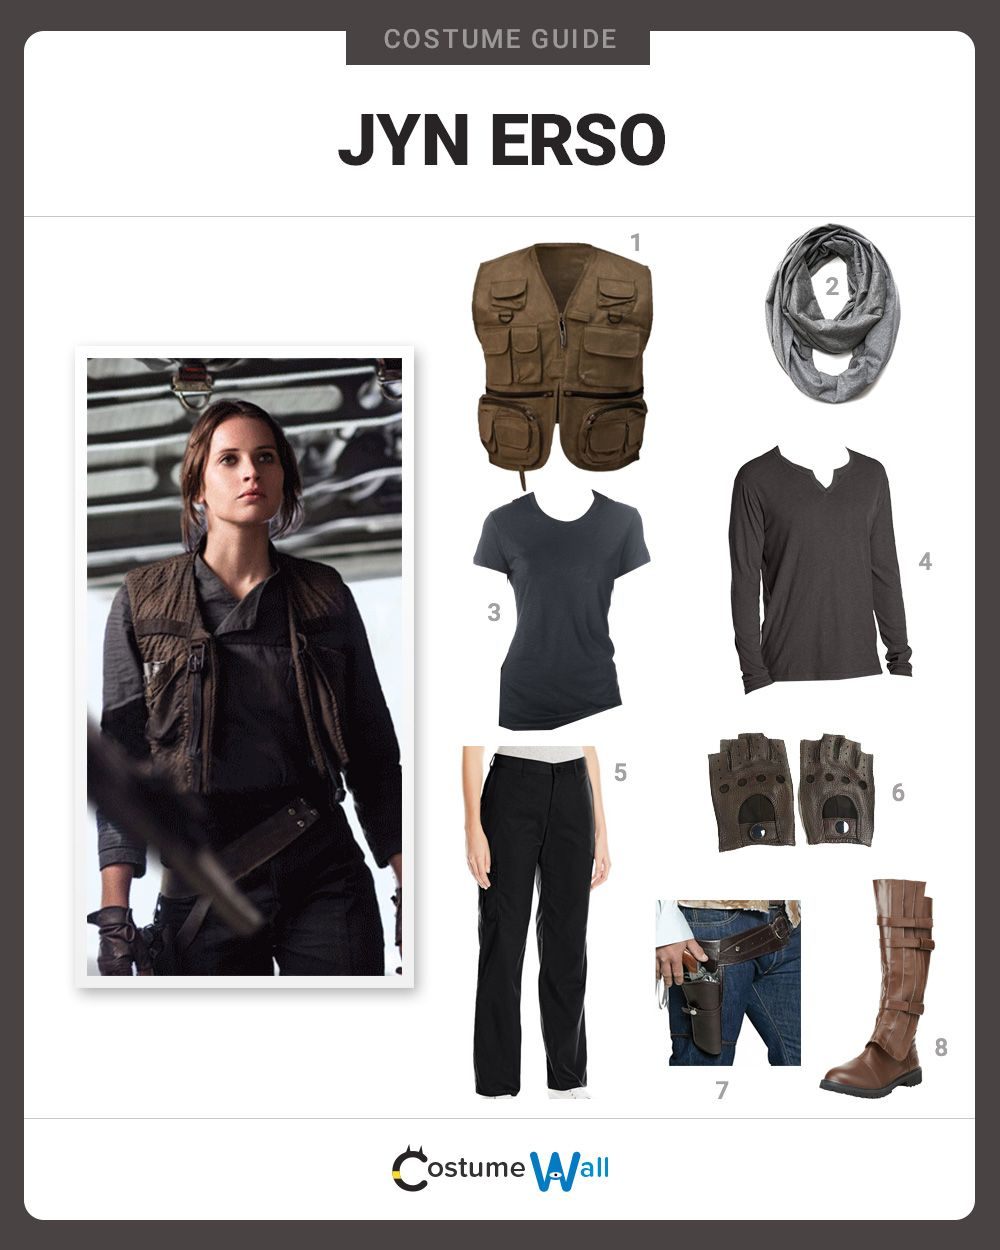 Dress like jyn erso felicity jones rogues and hero get into costume as jyn erso portrayed by felicity jones the hero from the movie rogue one a star wars story solutioingenieria Images